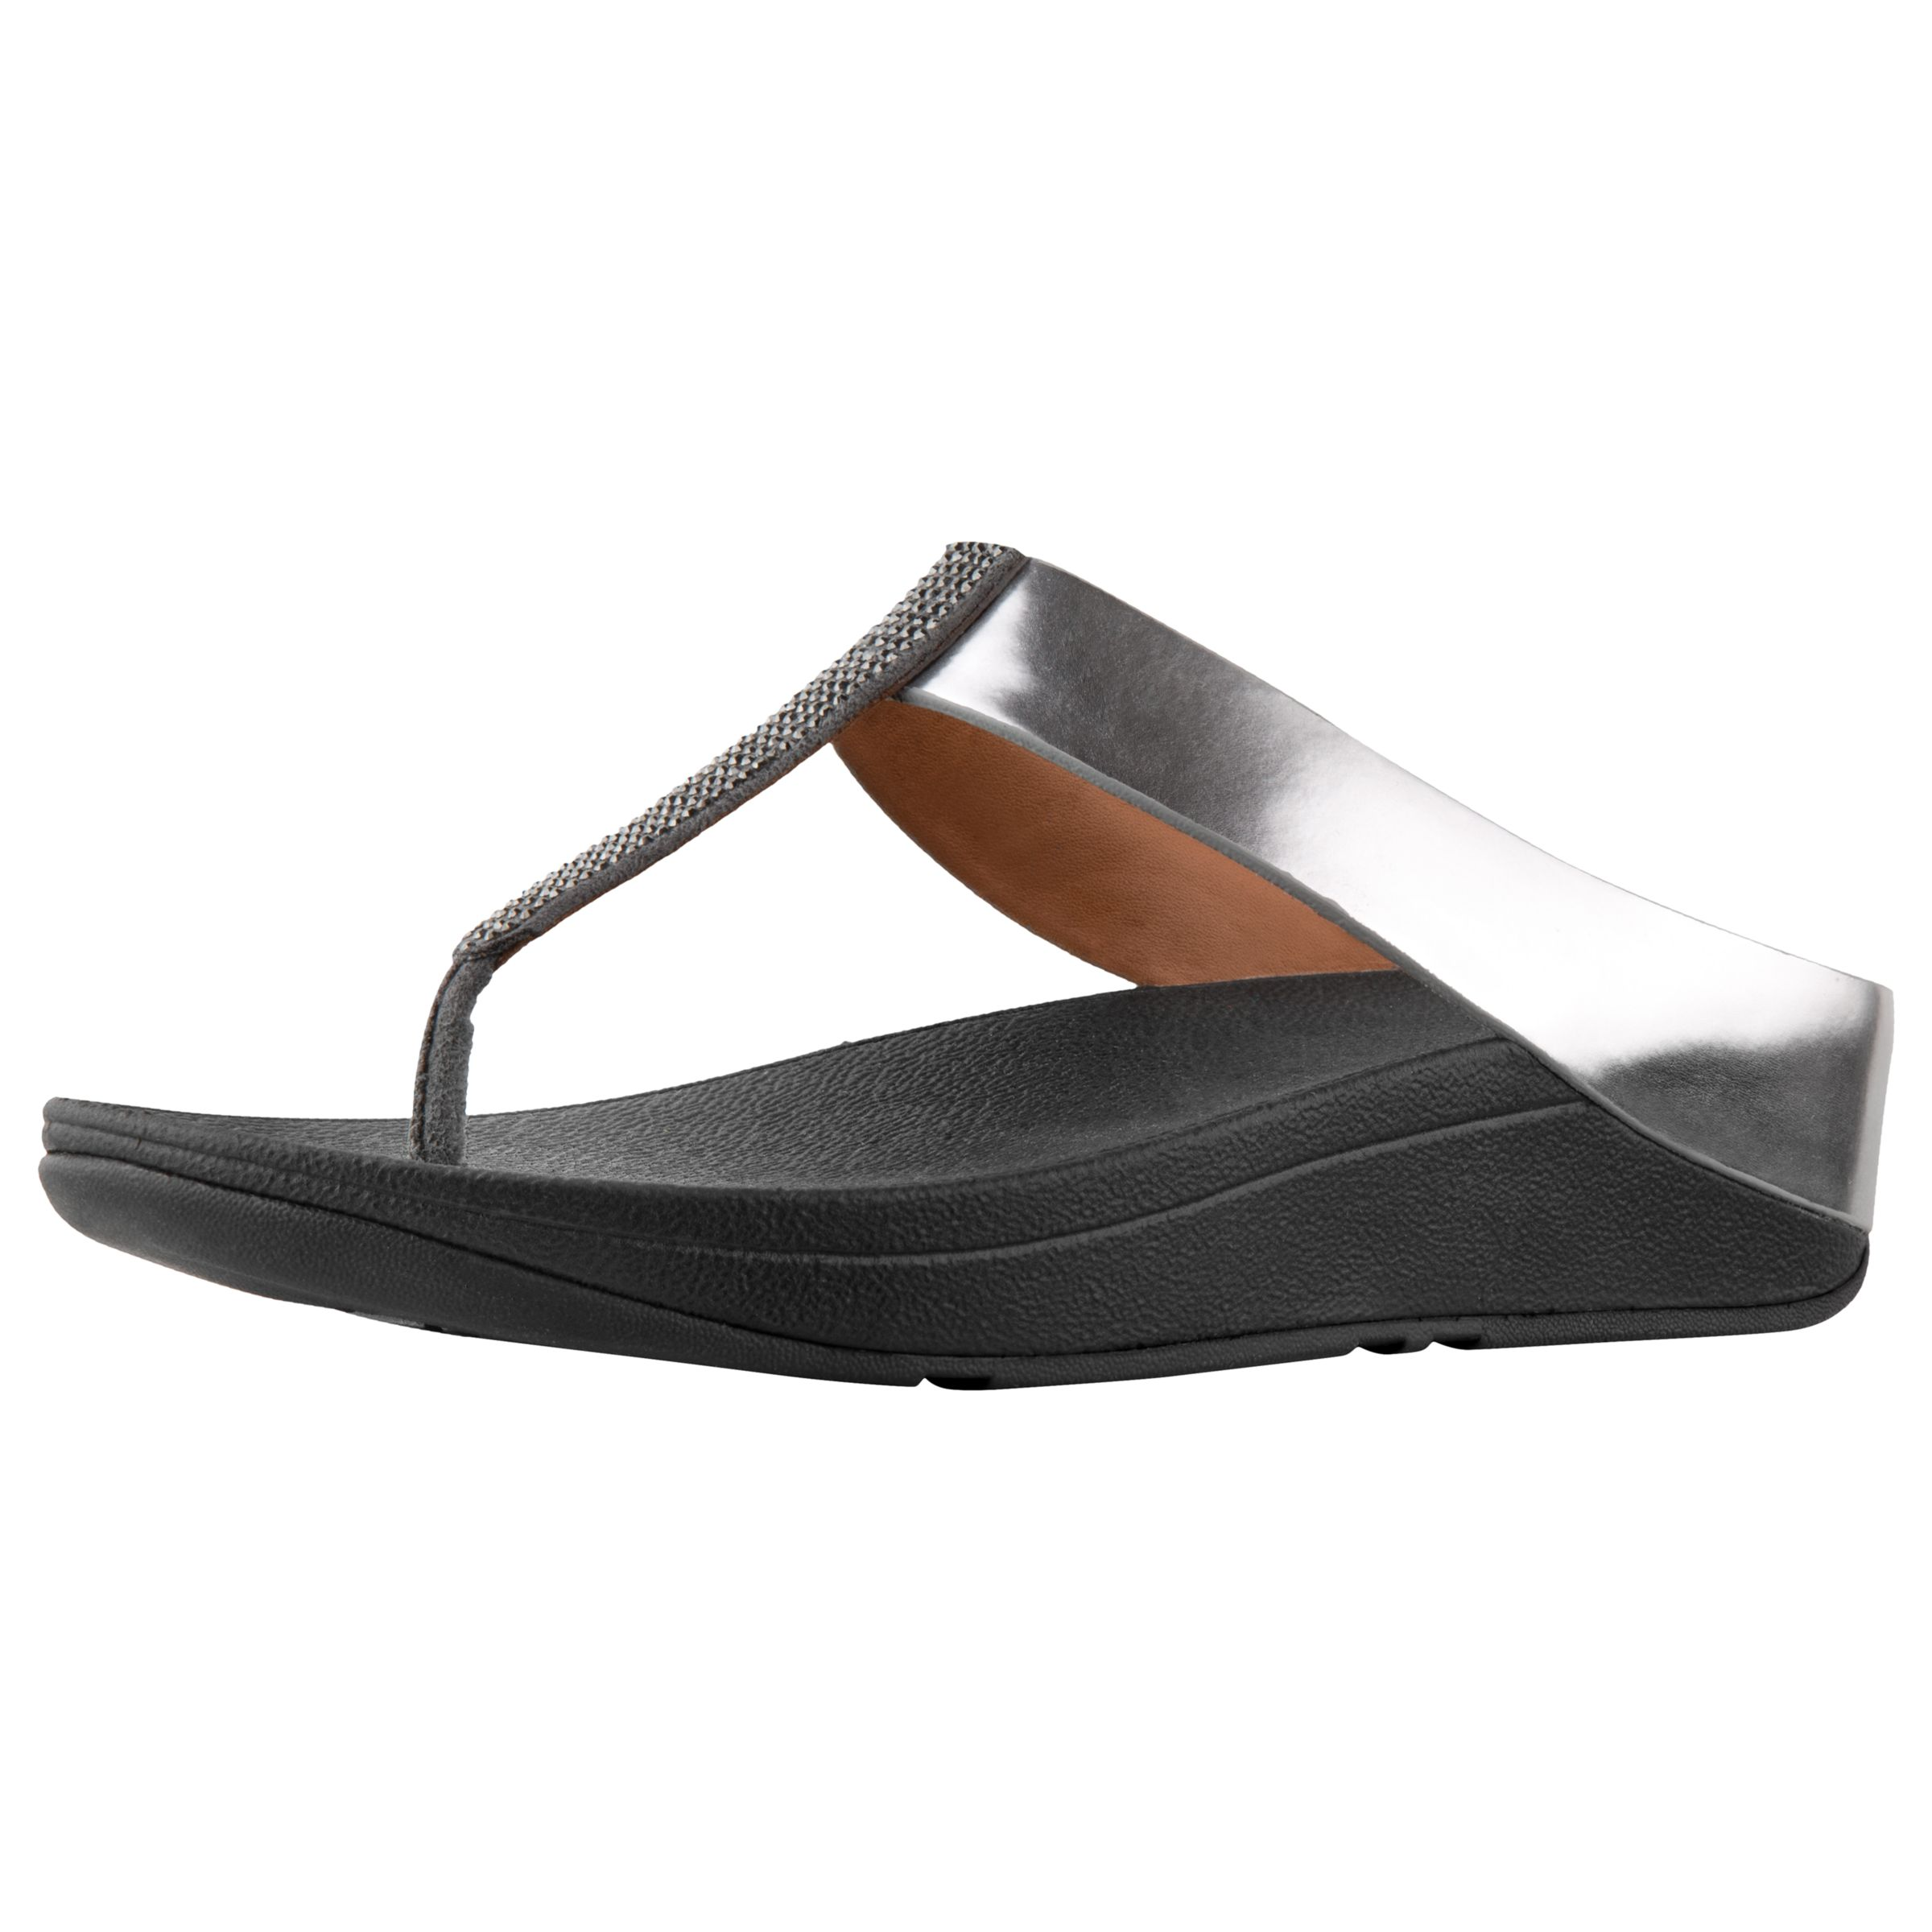 64a12e8f93a FitFlop Fino Crystal Toe Post Sandals at John Lewis   Partners